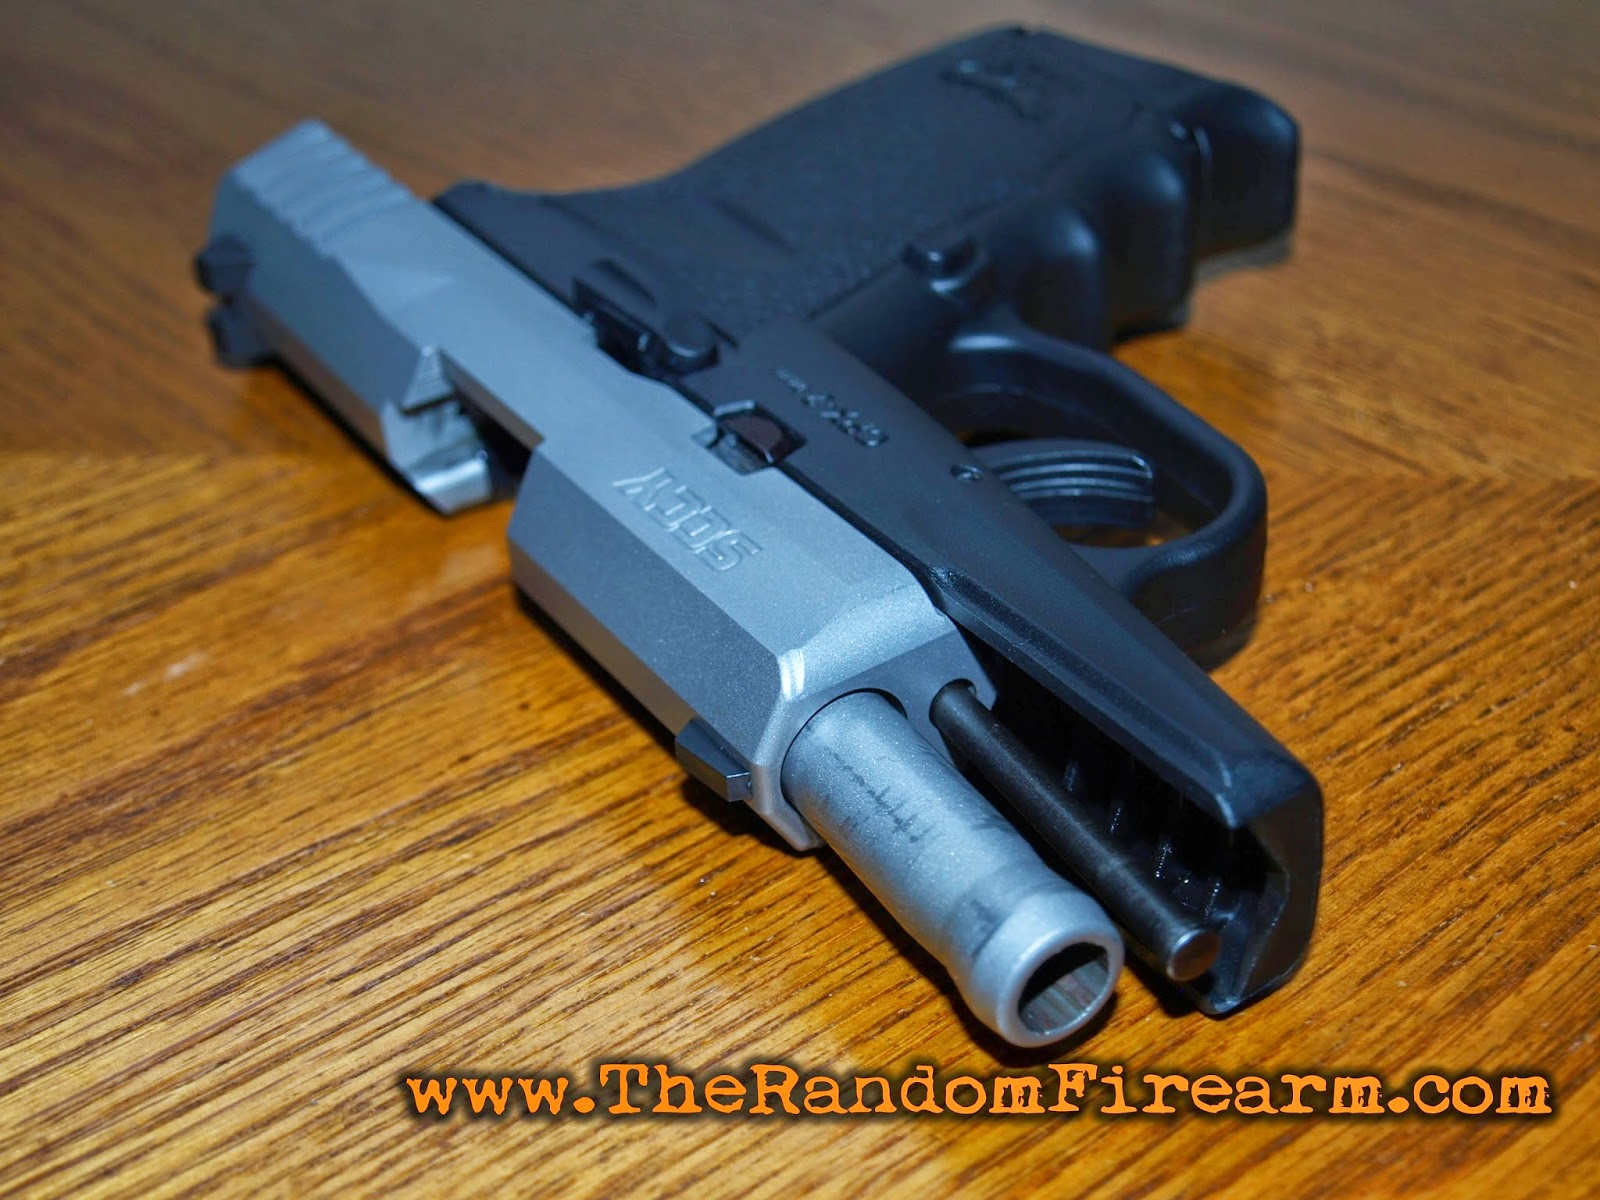 sccy cpx 2 two tone no safey review 9mm compact